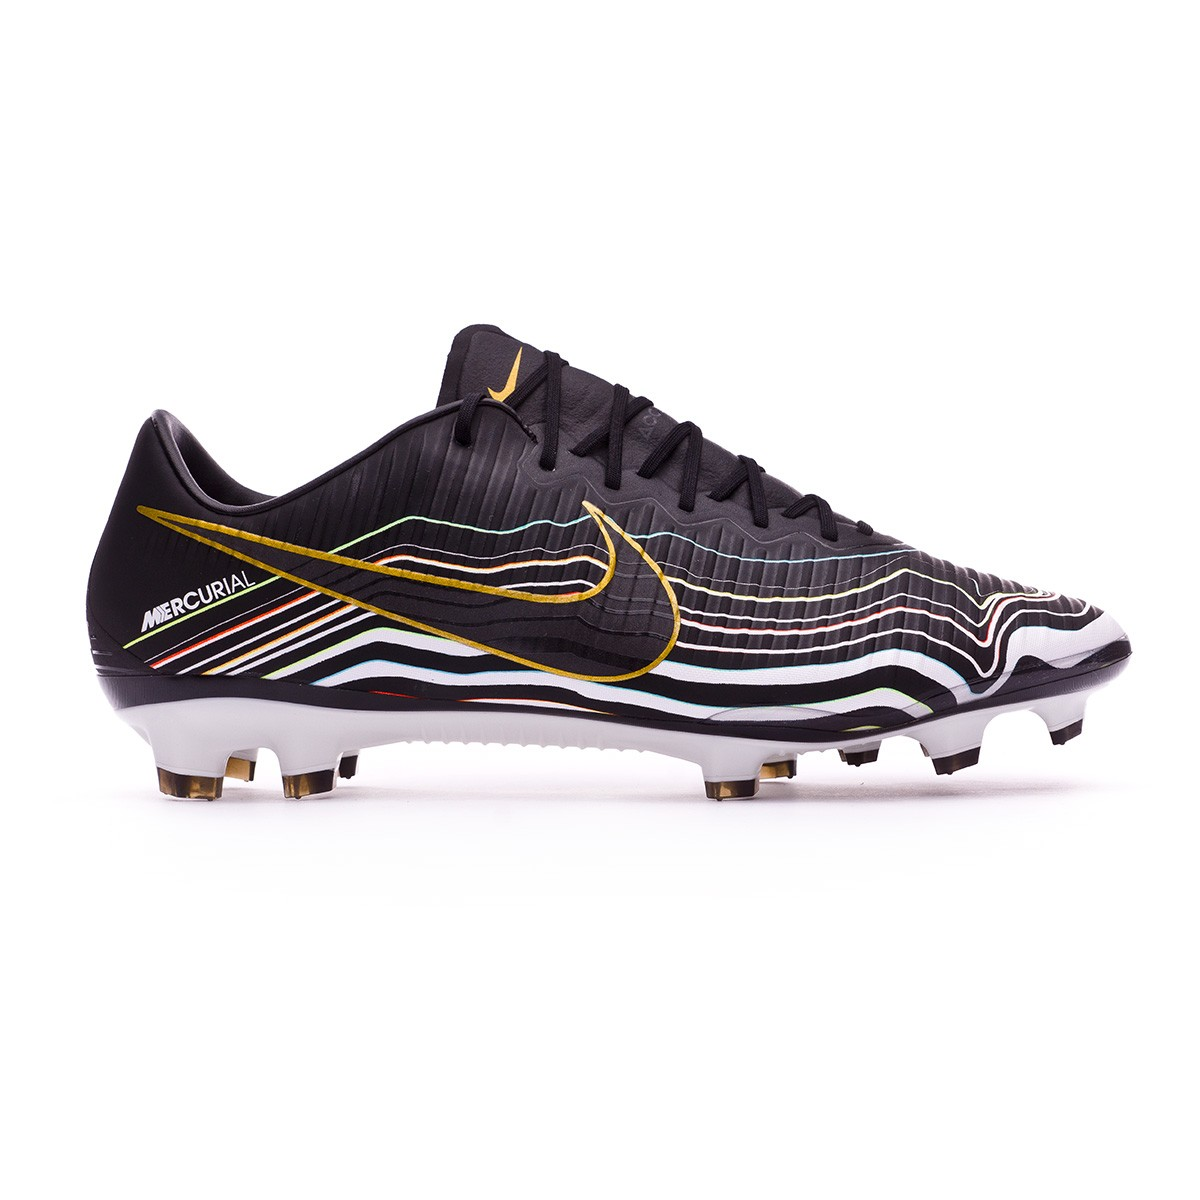 info for 9a2b9 39c5a Bota Mercurial Vapor XI ACC BHM Equality FG Black-Gamma blue-Metallic gold